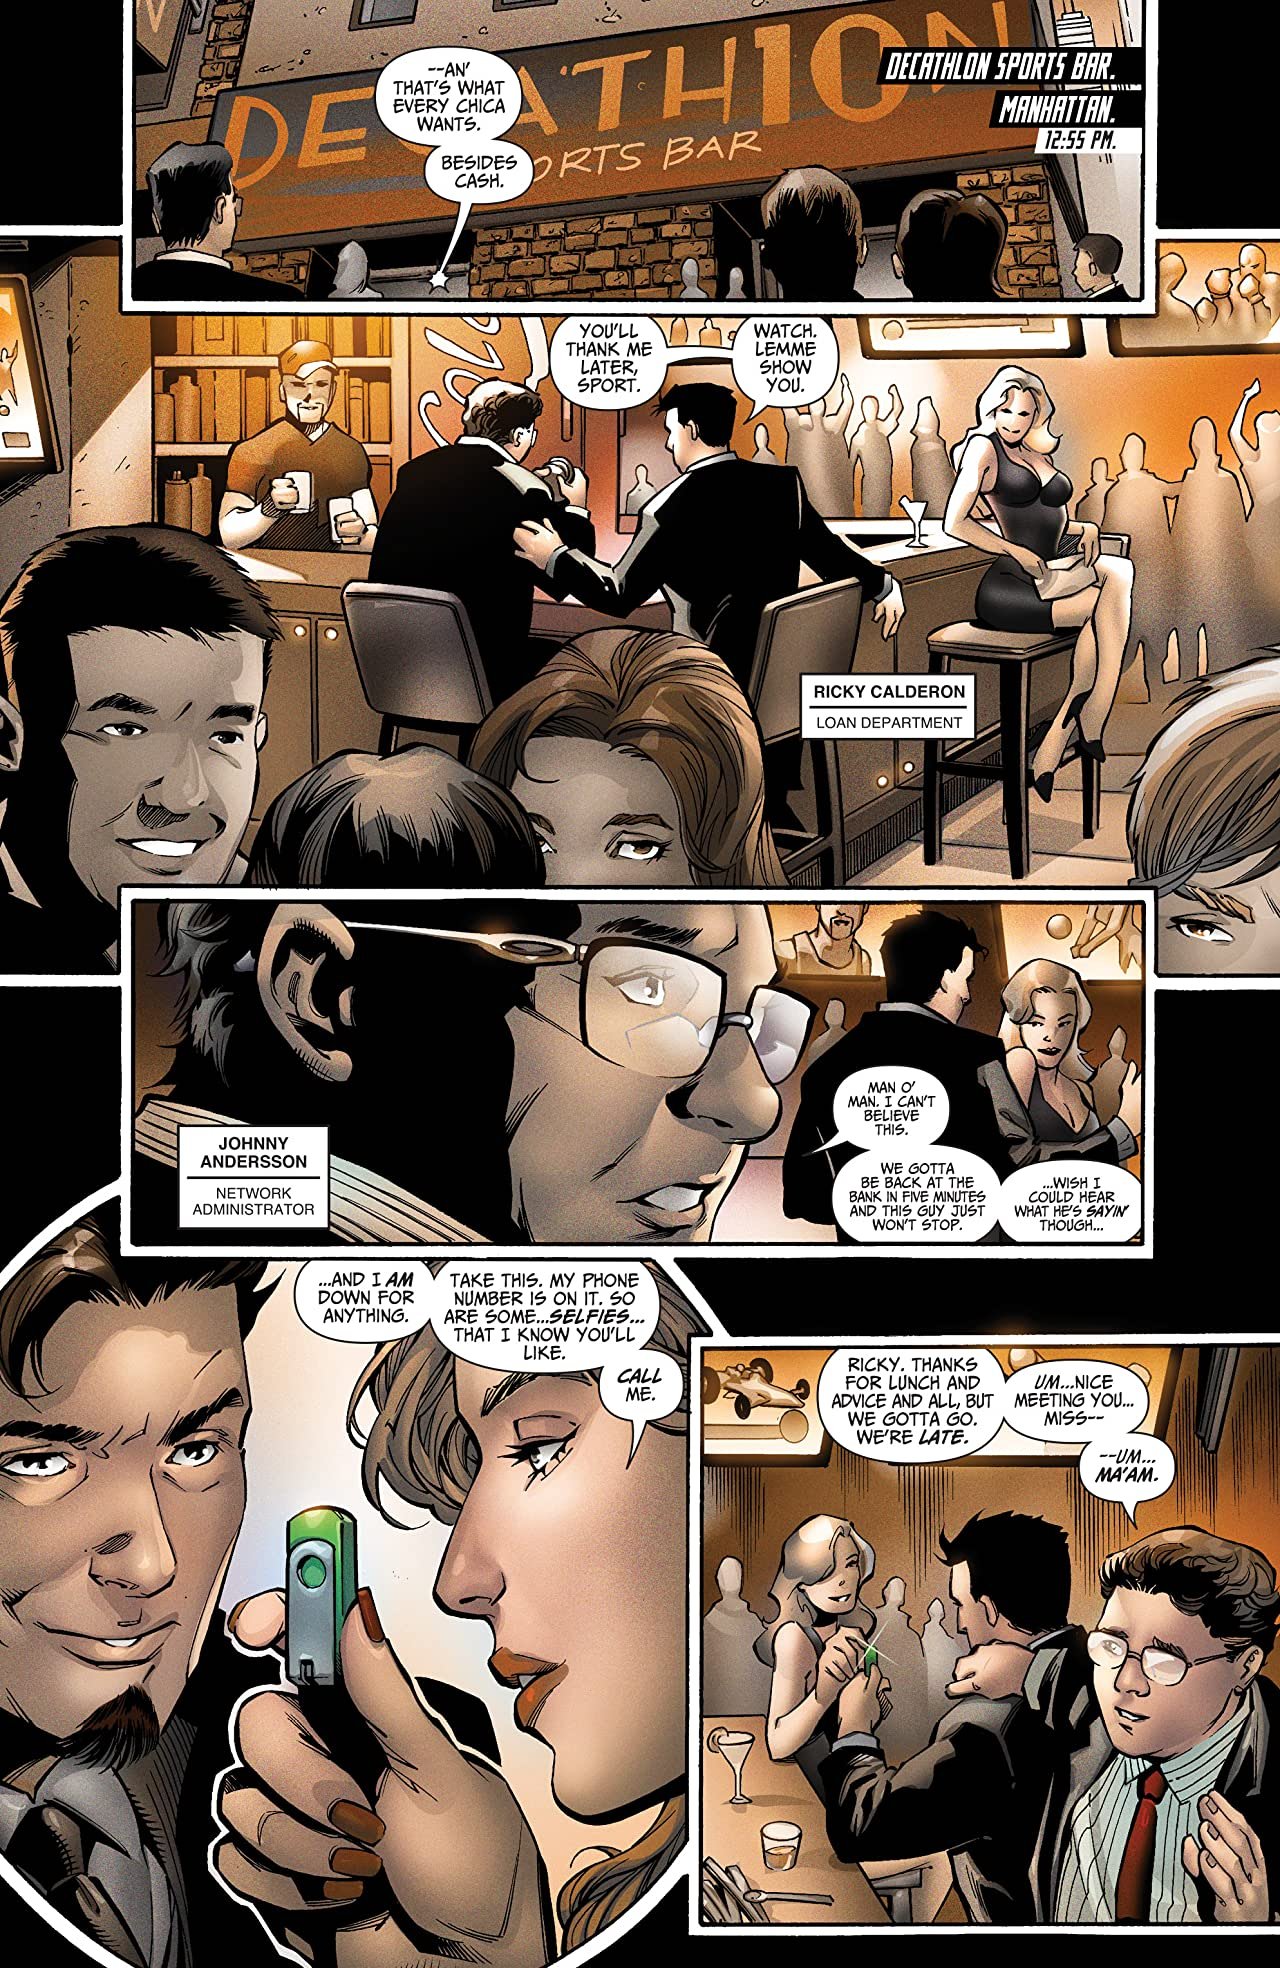 I.T. - The Secret World of Modern Banking Vol. 2 #1